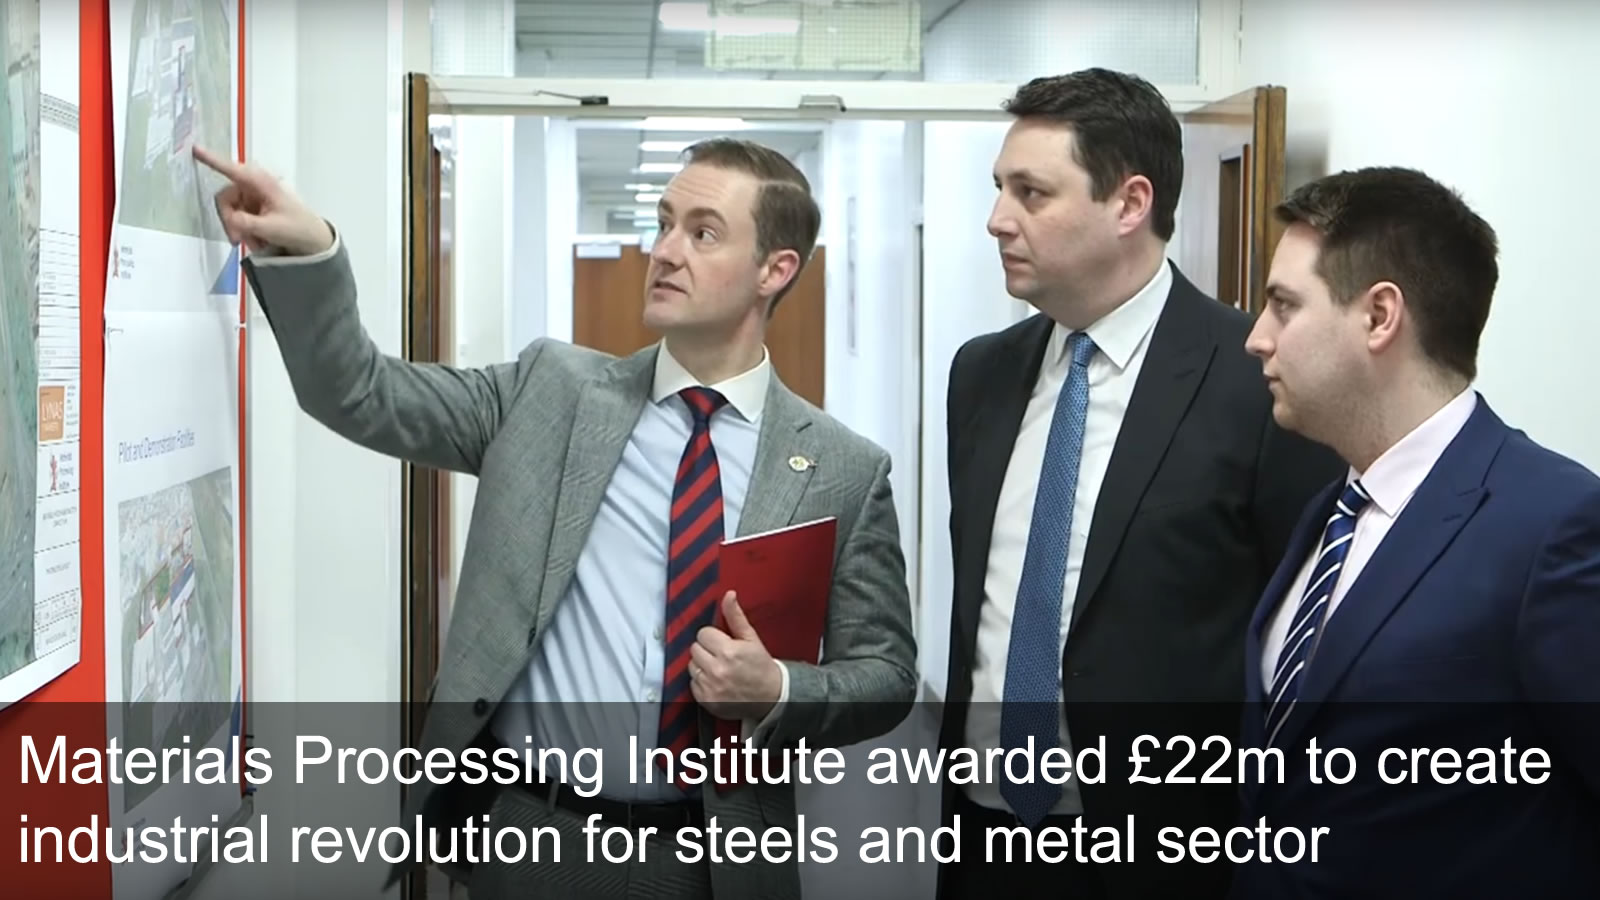 Materials Processing Institute awarded £22m to create industrial revolution for steels and metal sector - March 2020